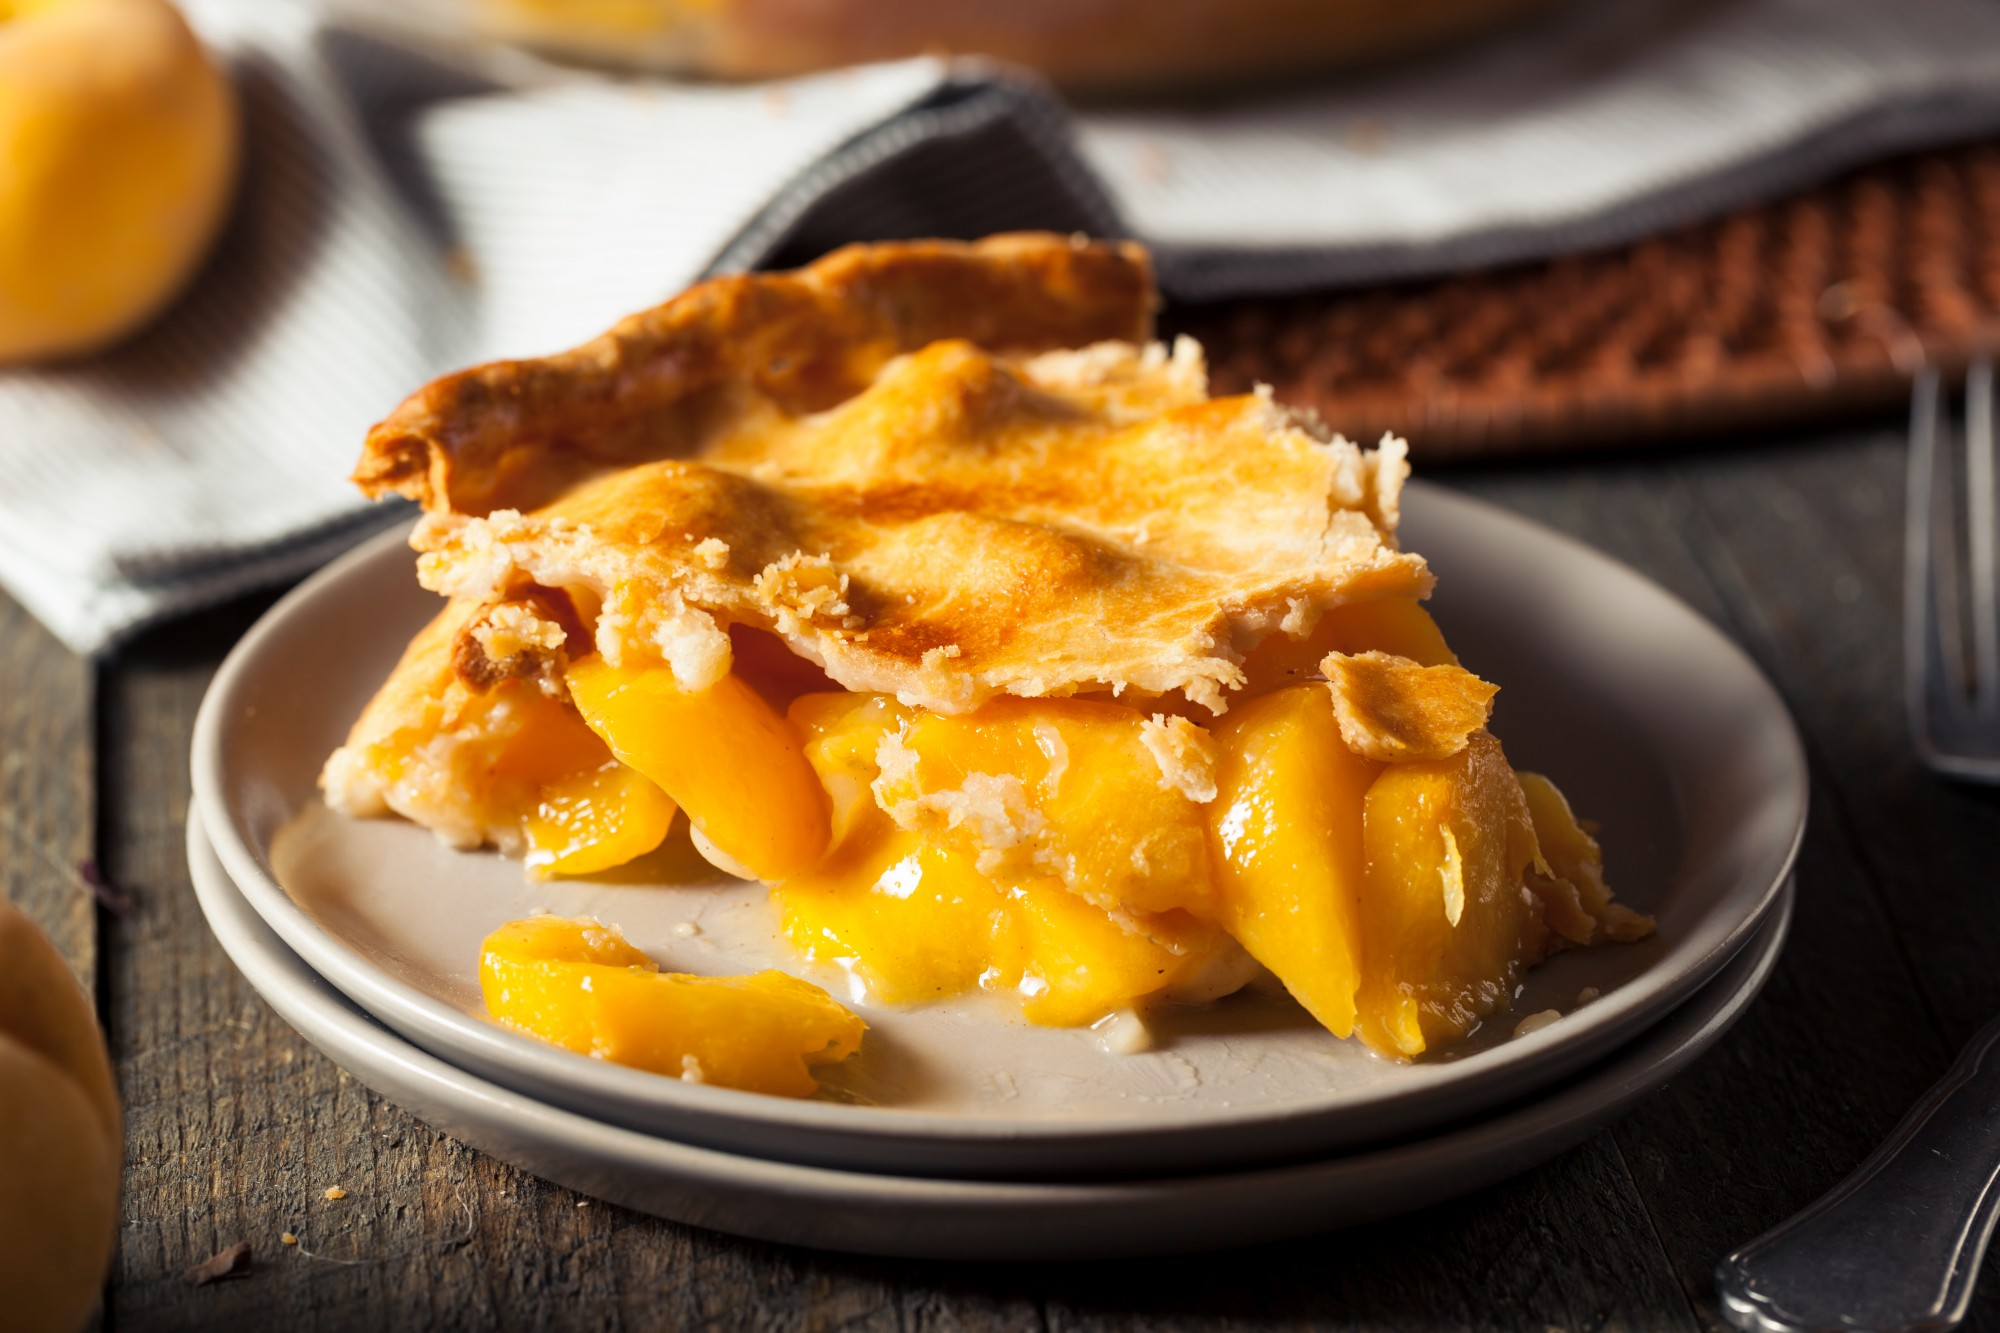 A slice of peach pie on a plate on a table made of dark wood.